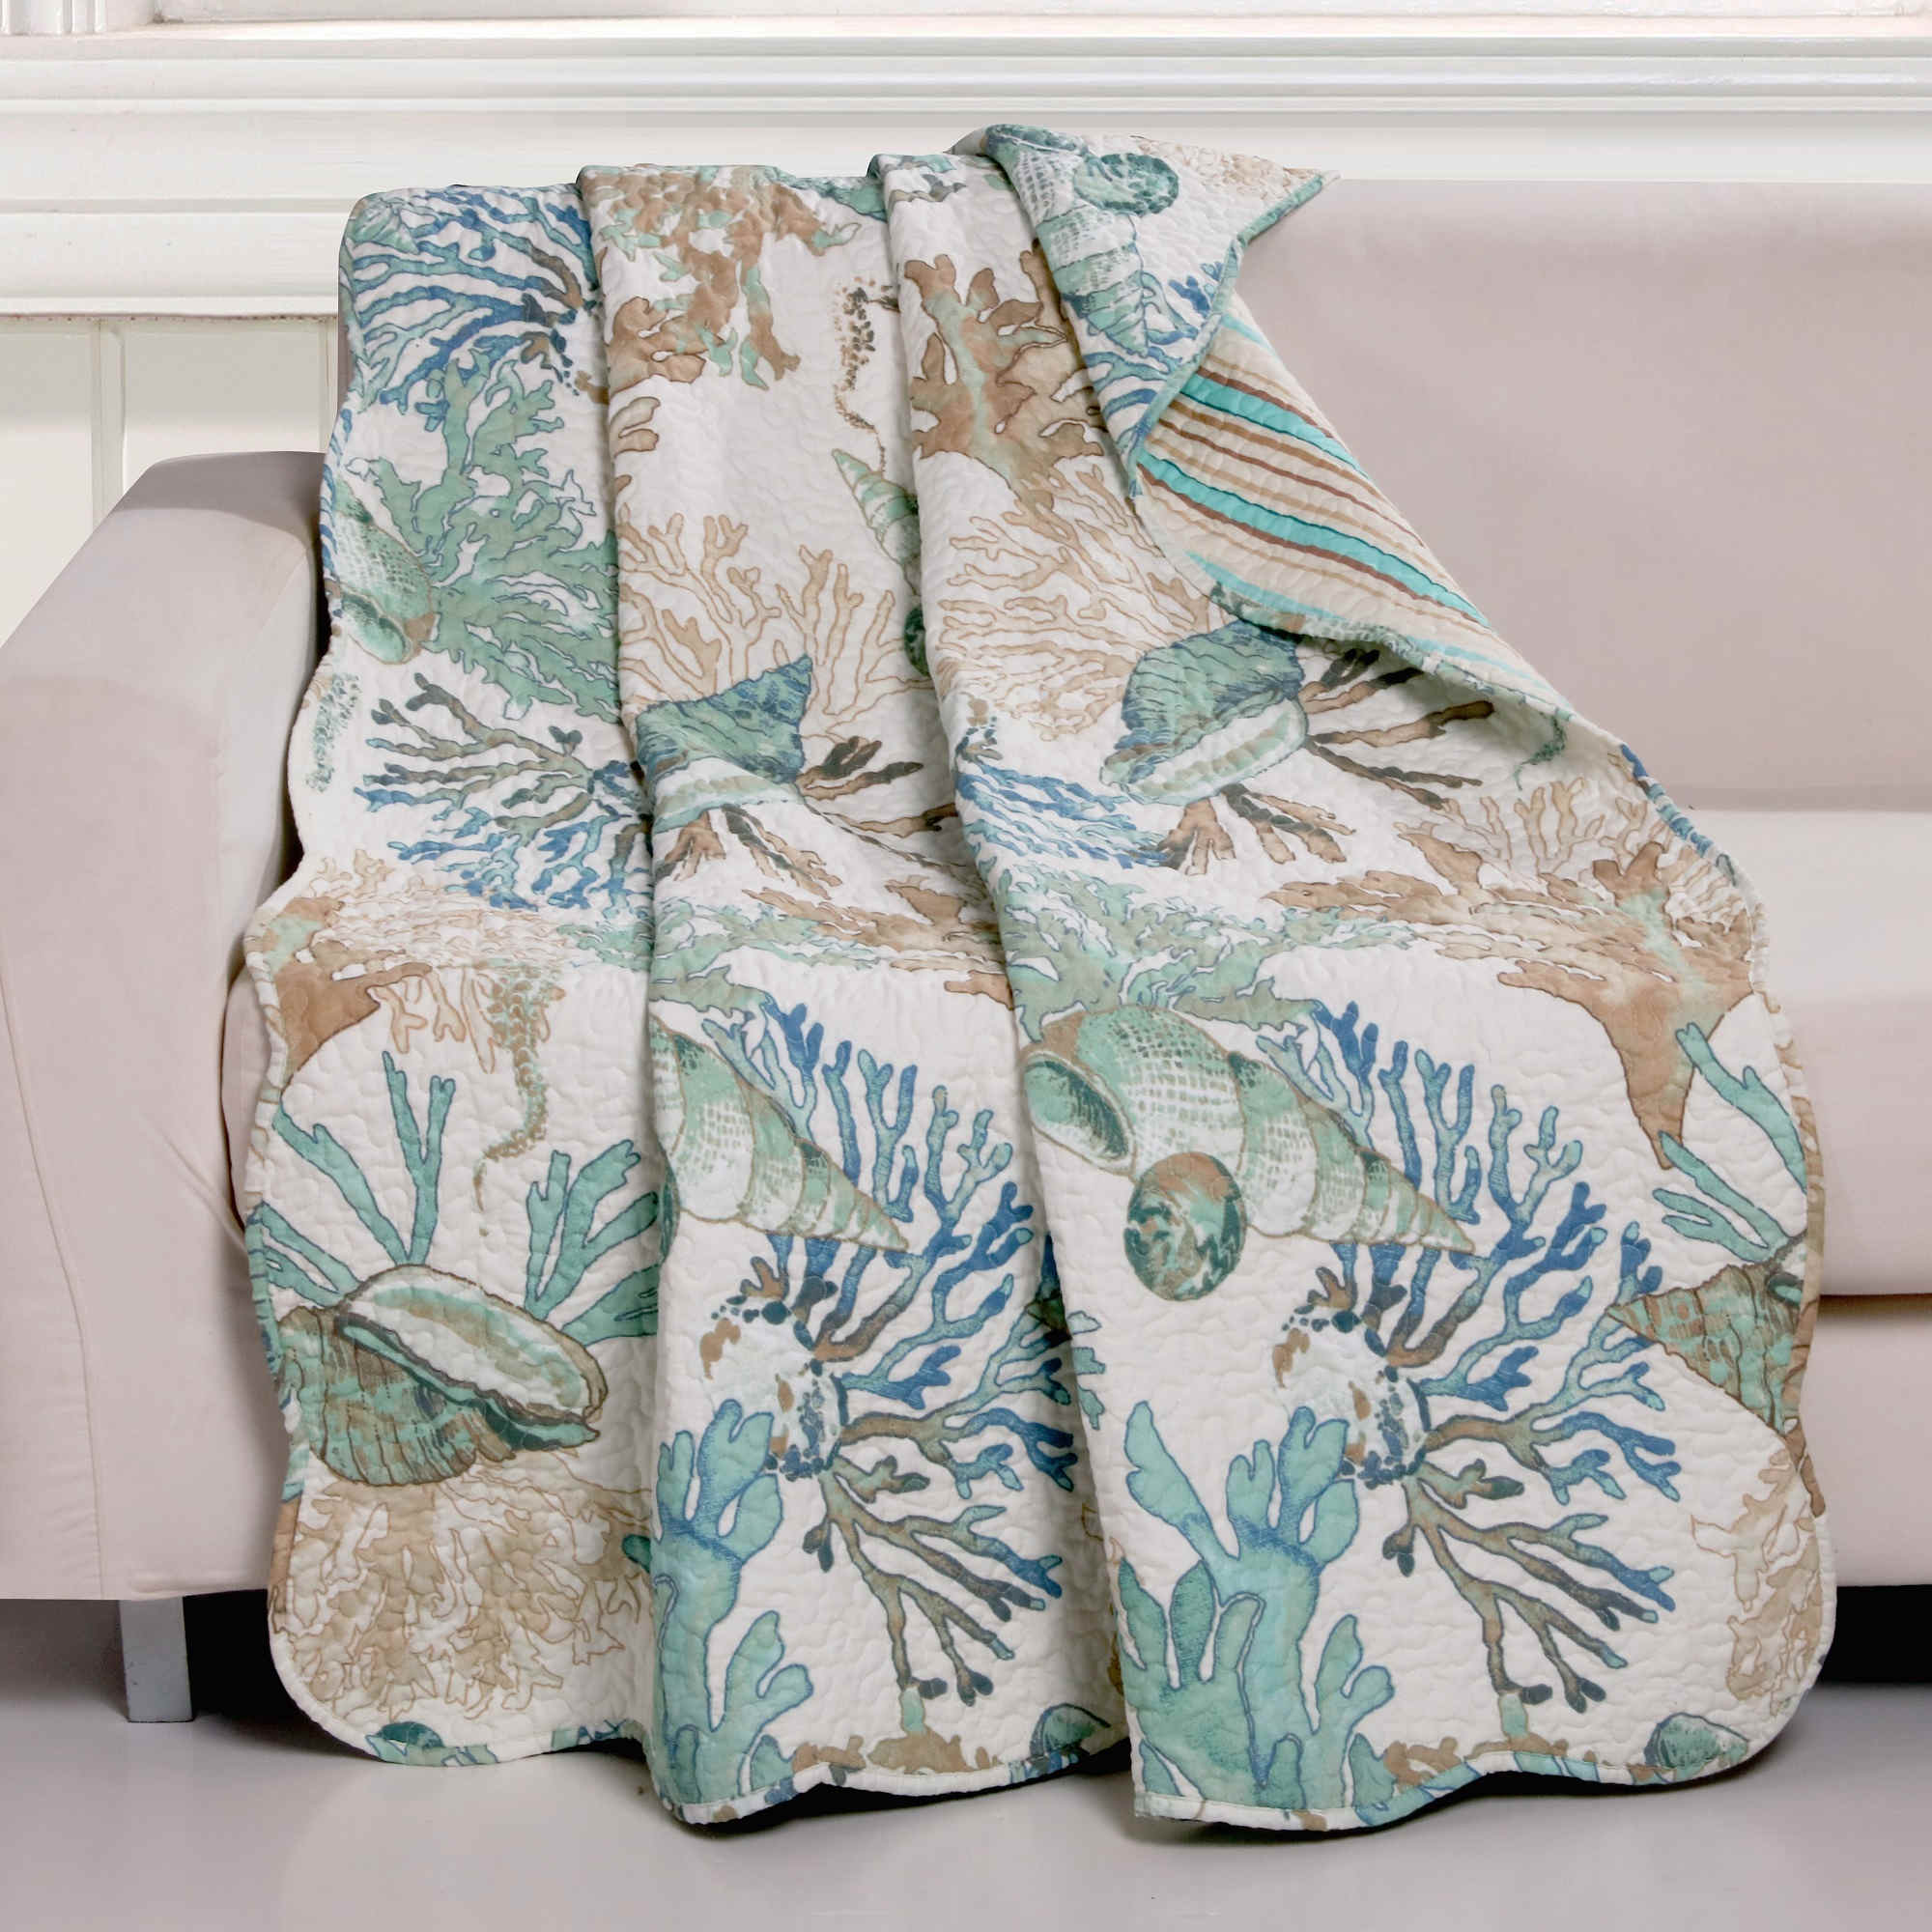 Atlantis Jade Accessory Throw